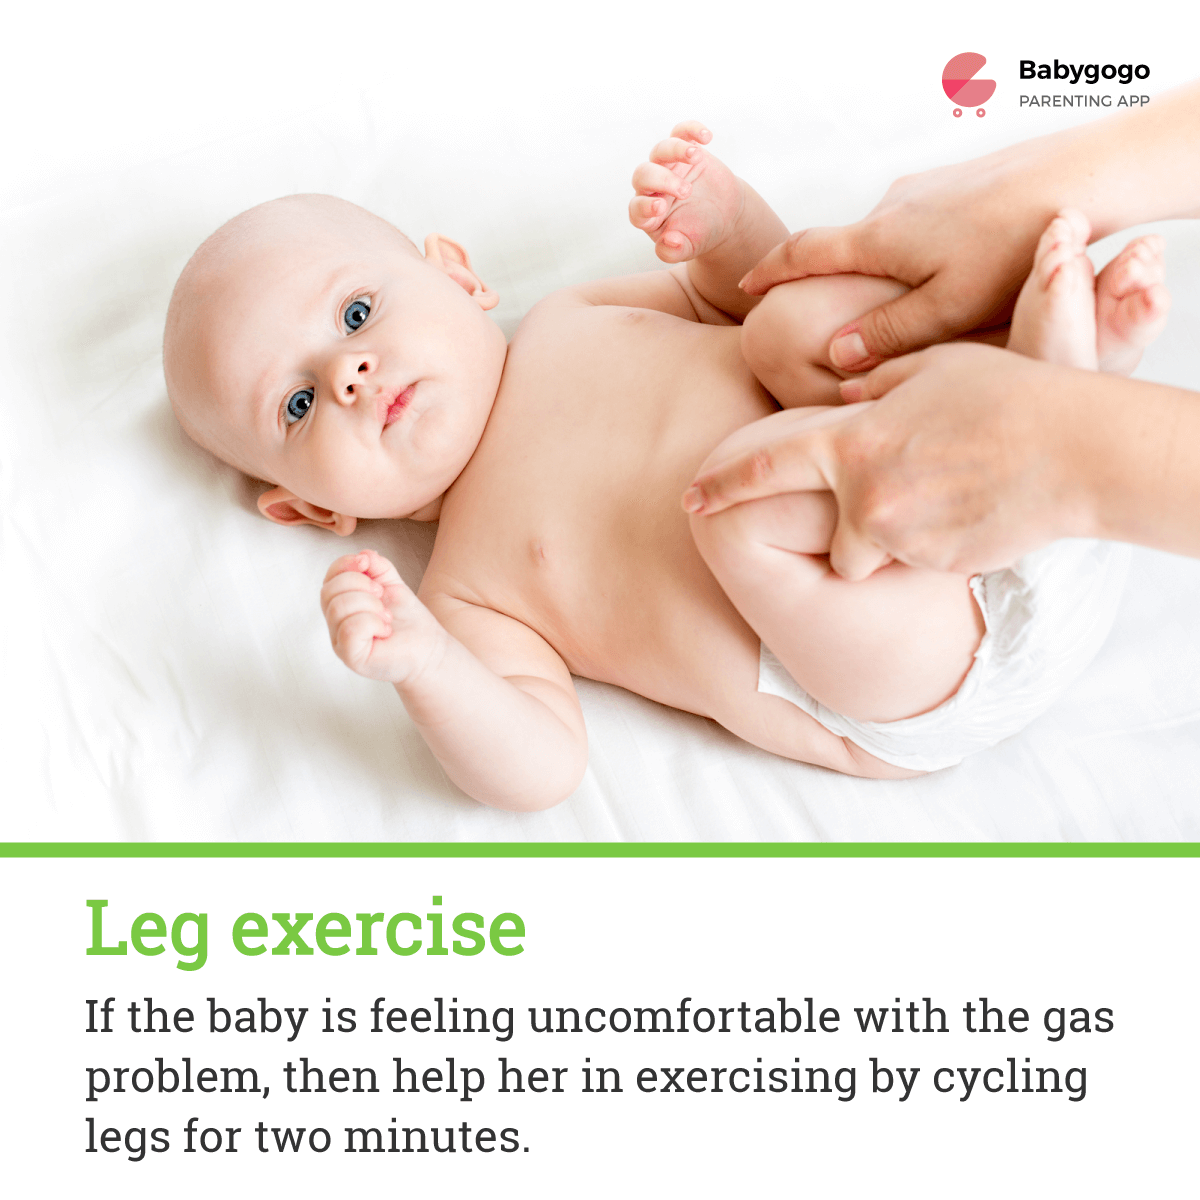 leg exercise for gas pain in babies